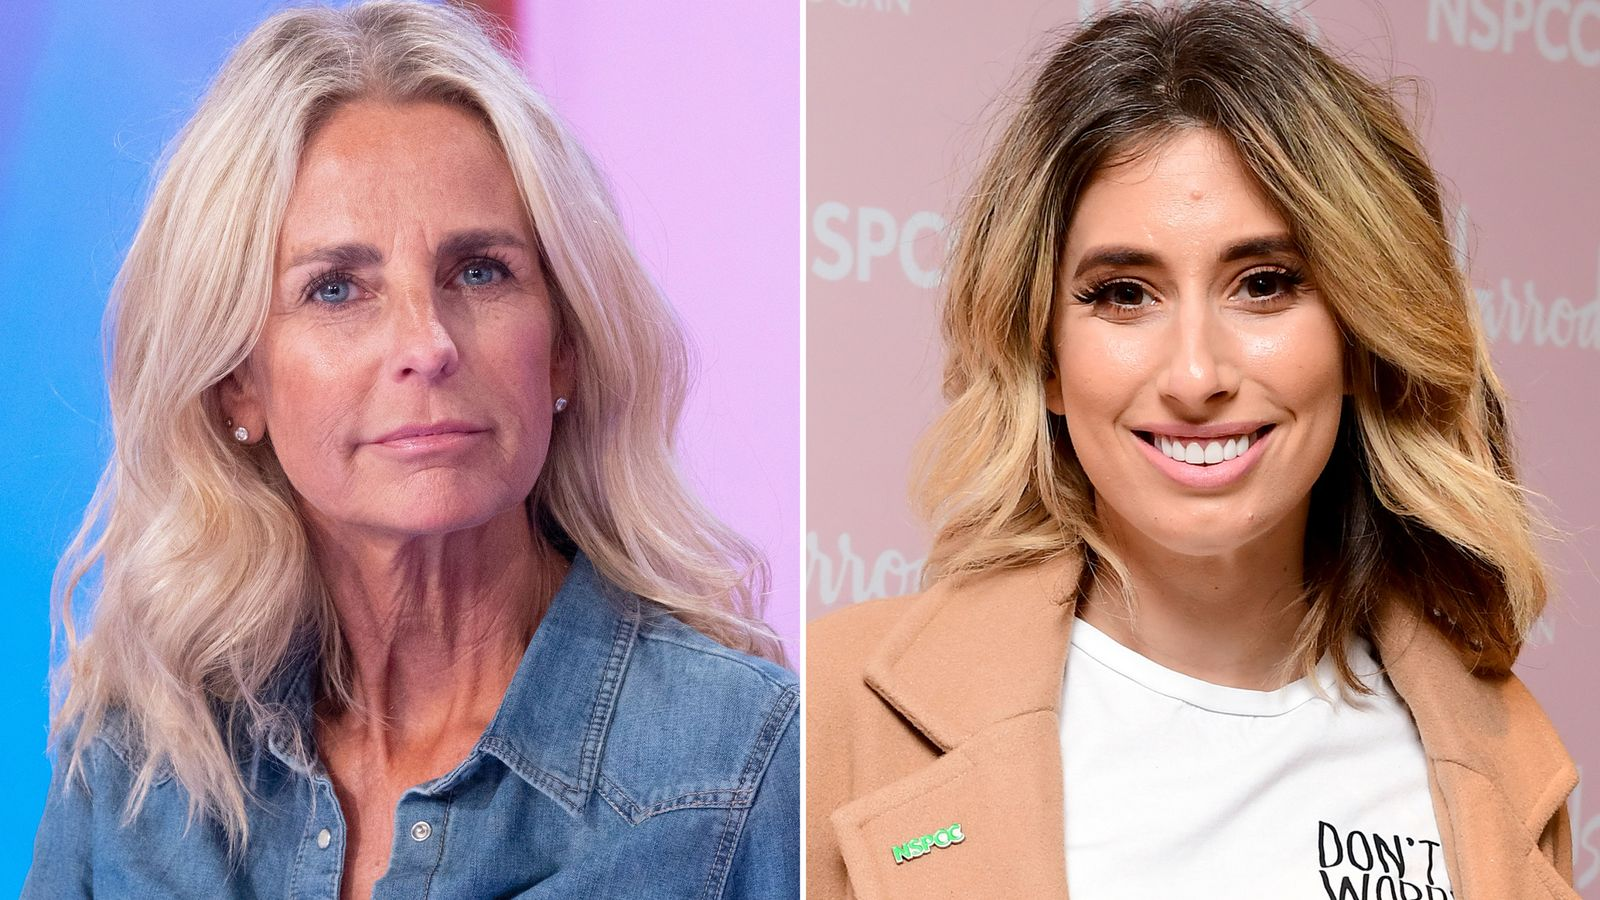 Pictures stacey solomon Stacey Solomon